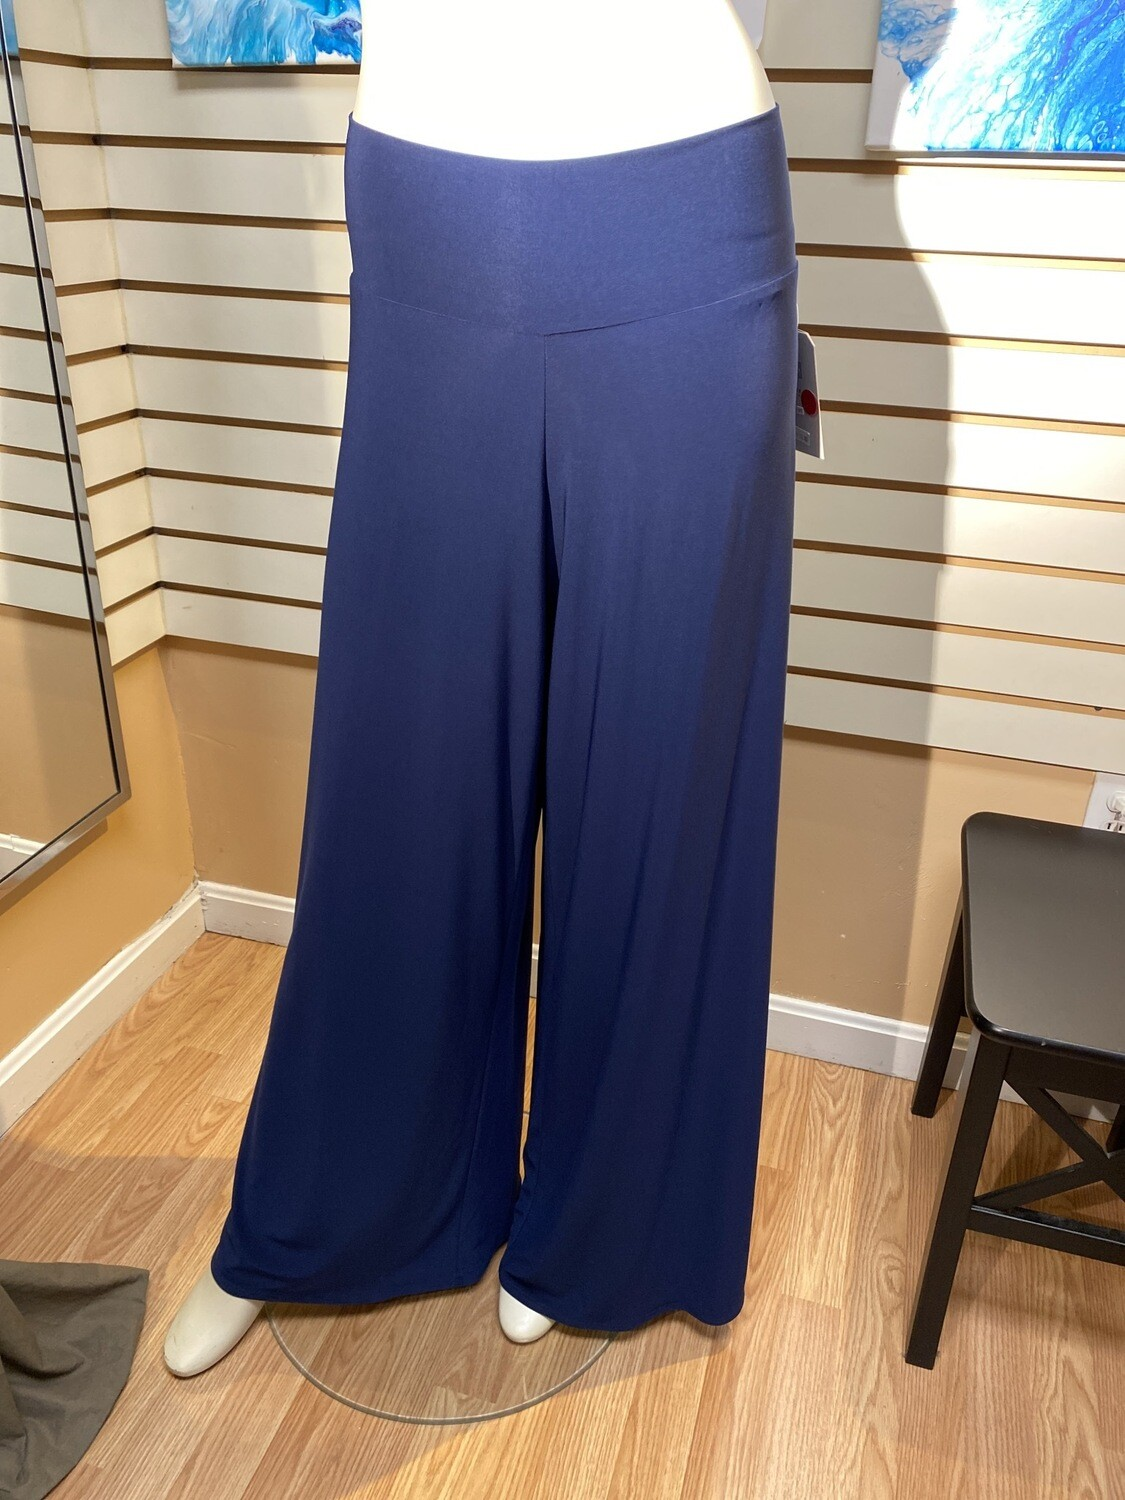 Major Deal Clara SunWoo. Beautiful Full Pant Only 1. Size 1X /18. Crepe Rayon. Pinned Here To Fit Model.